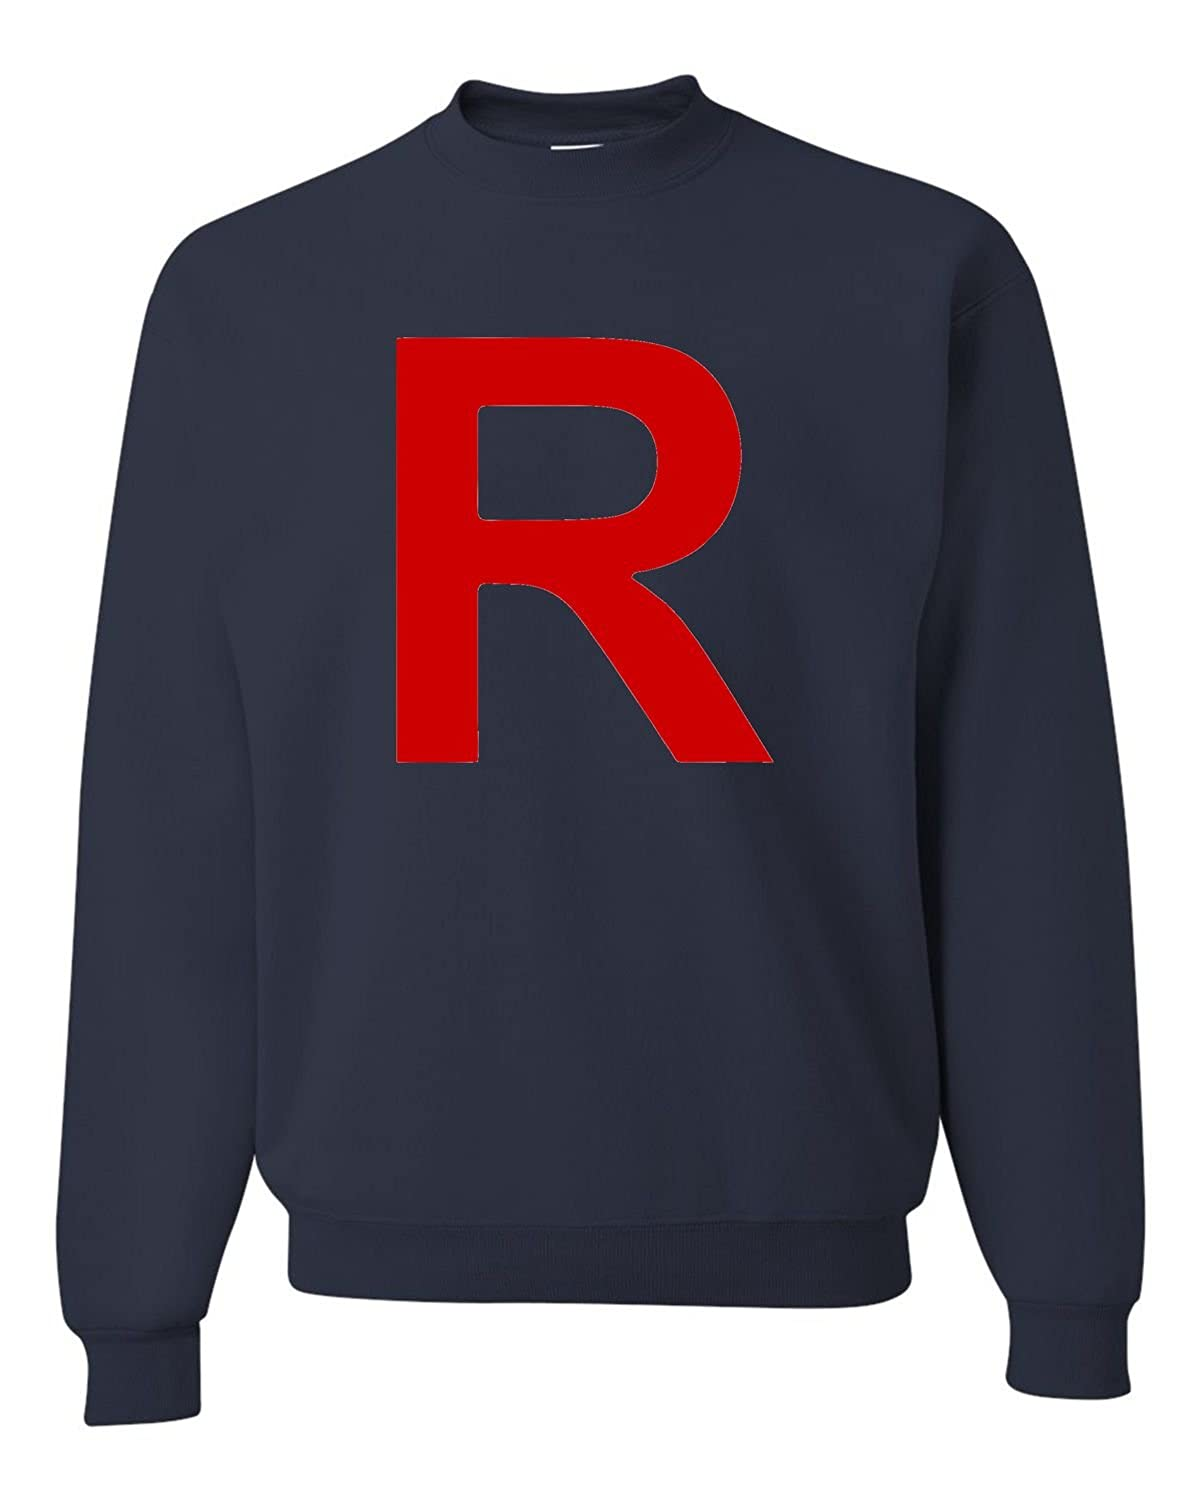 Go All Out Adult Team Rocket Sweatshirt Crewneck